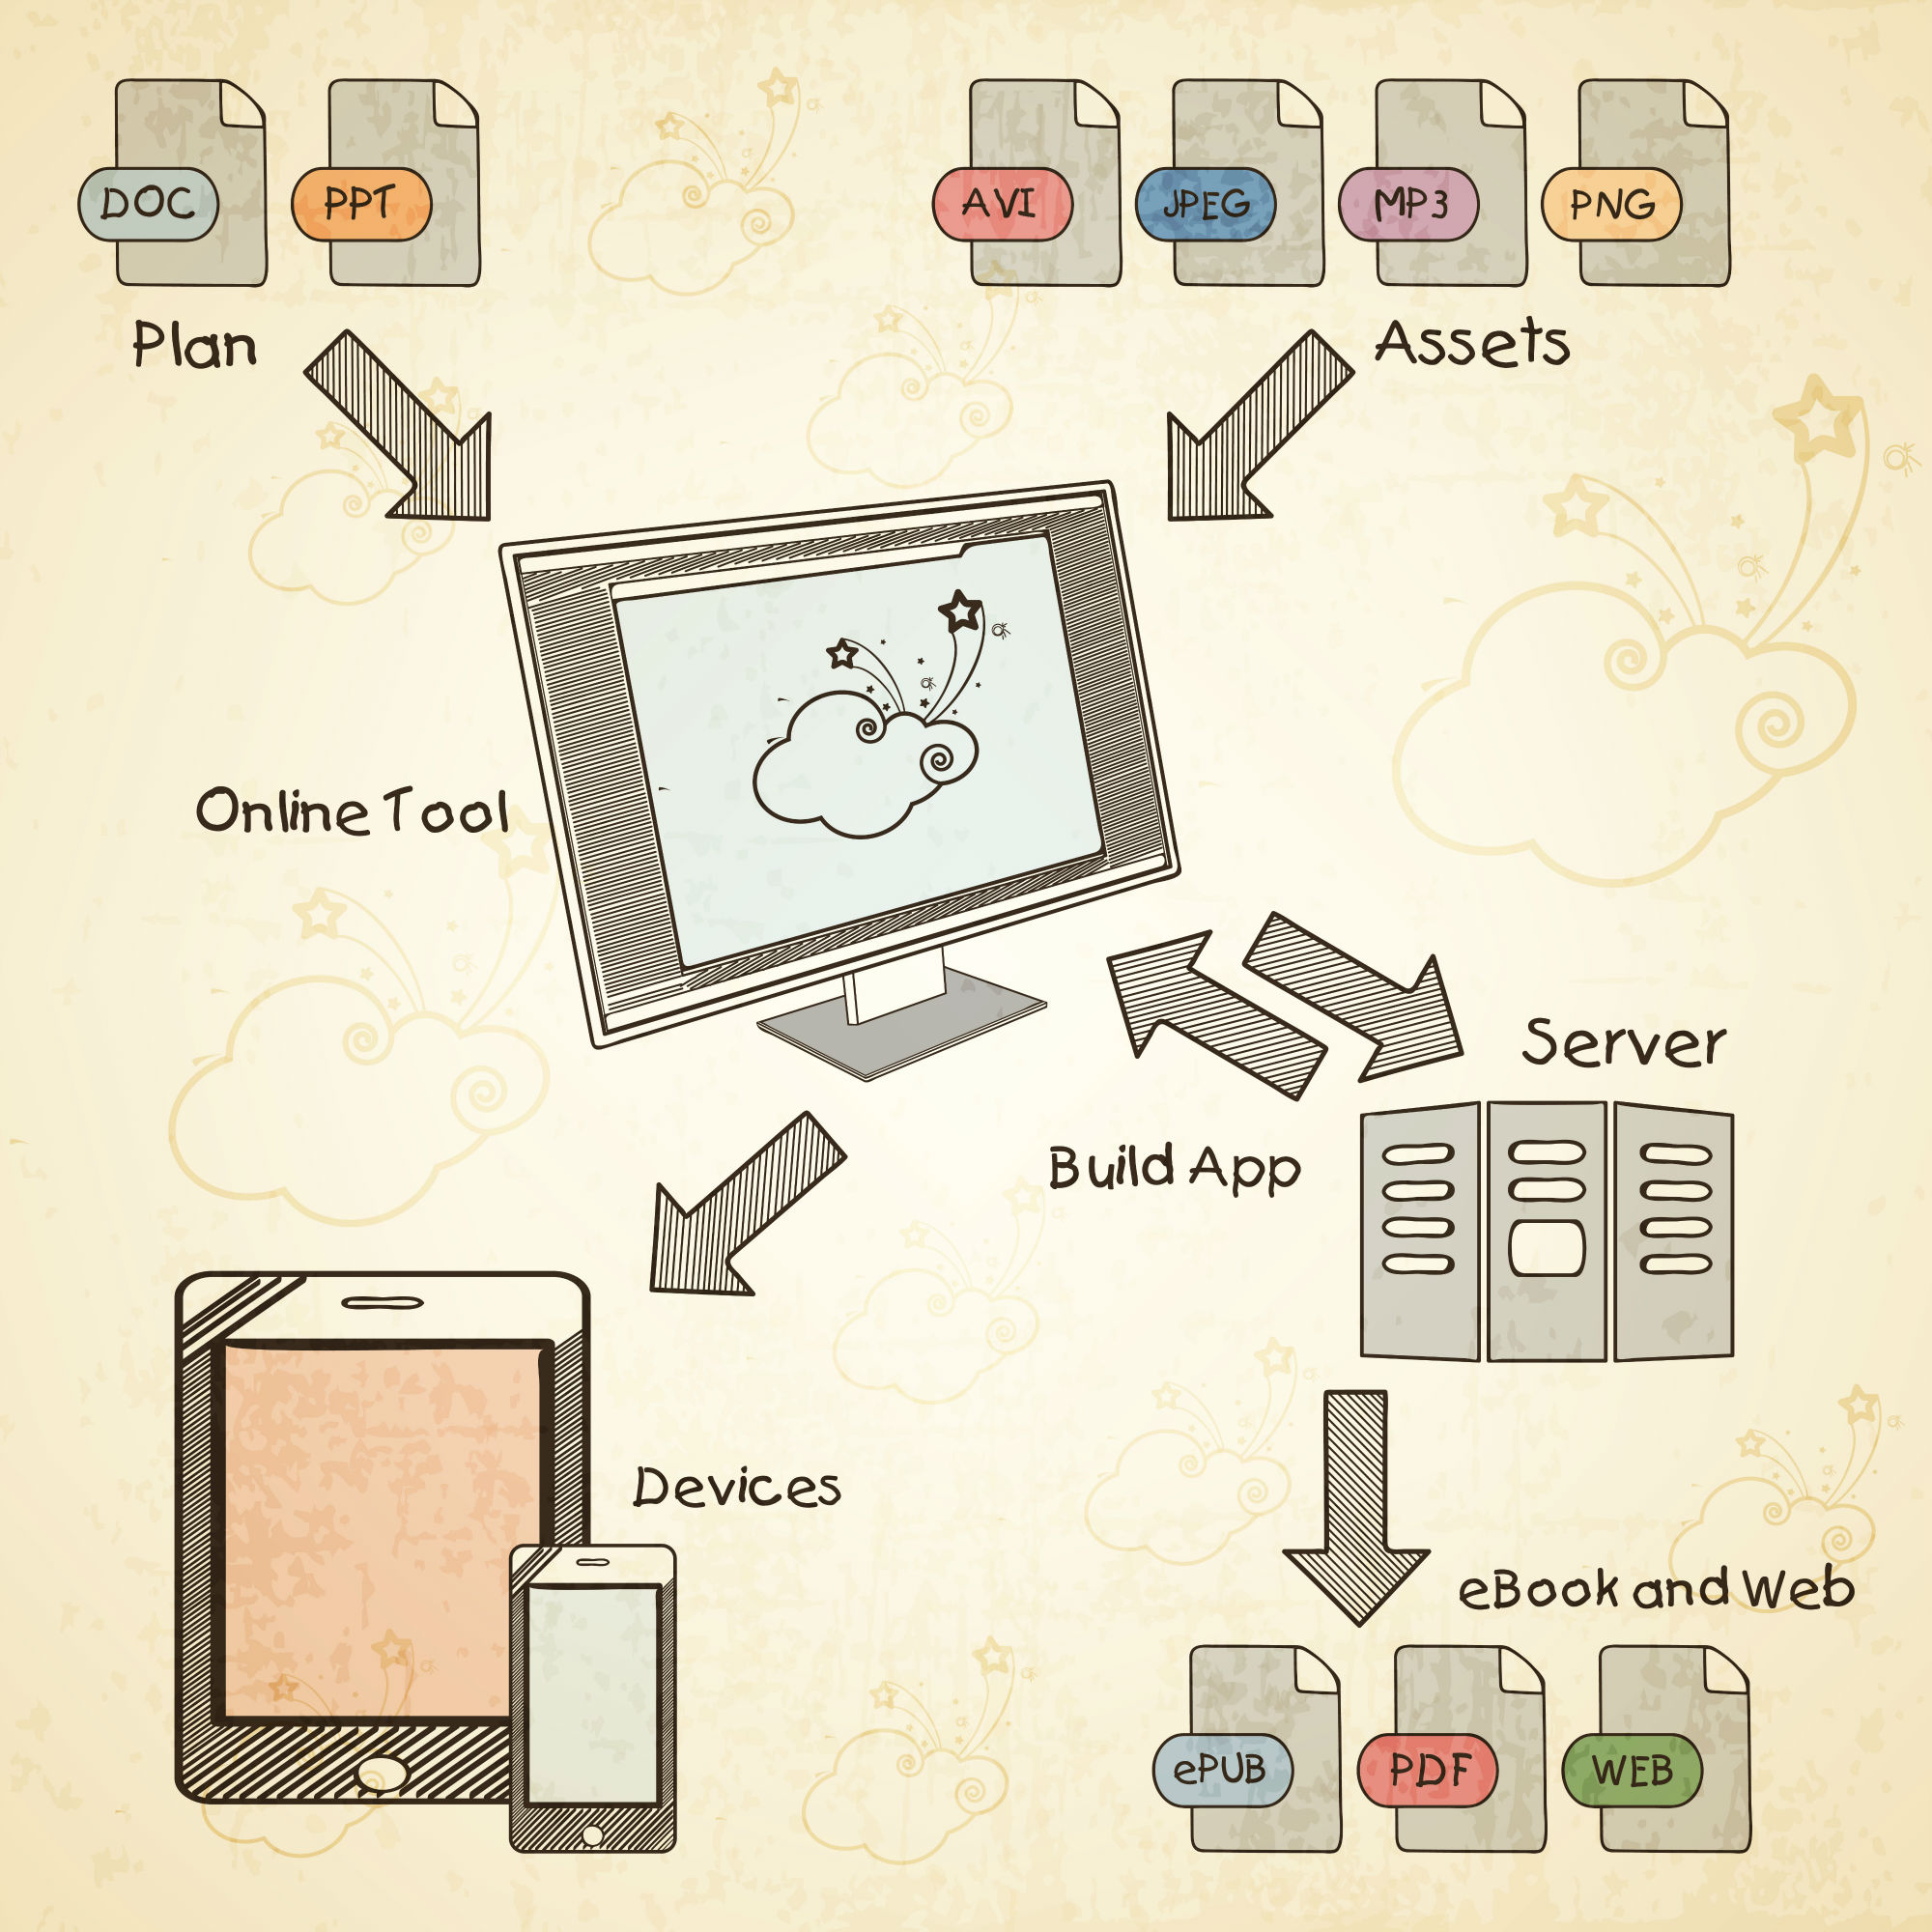 digital assets, flow chart, plans, servers, devices.jpg